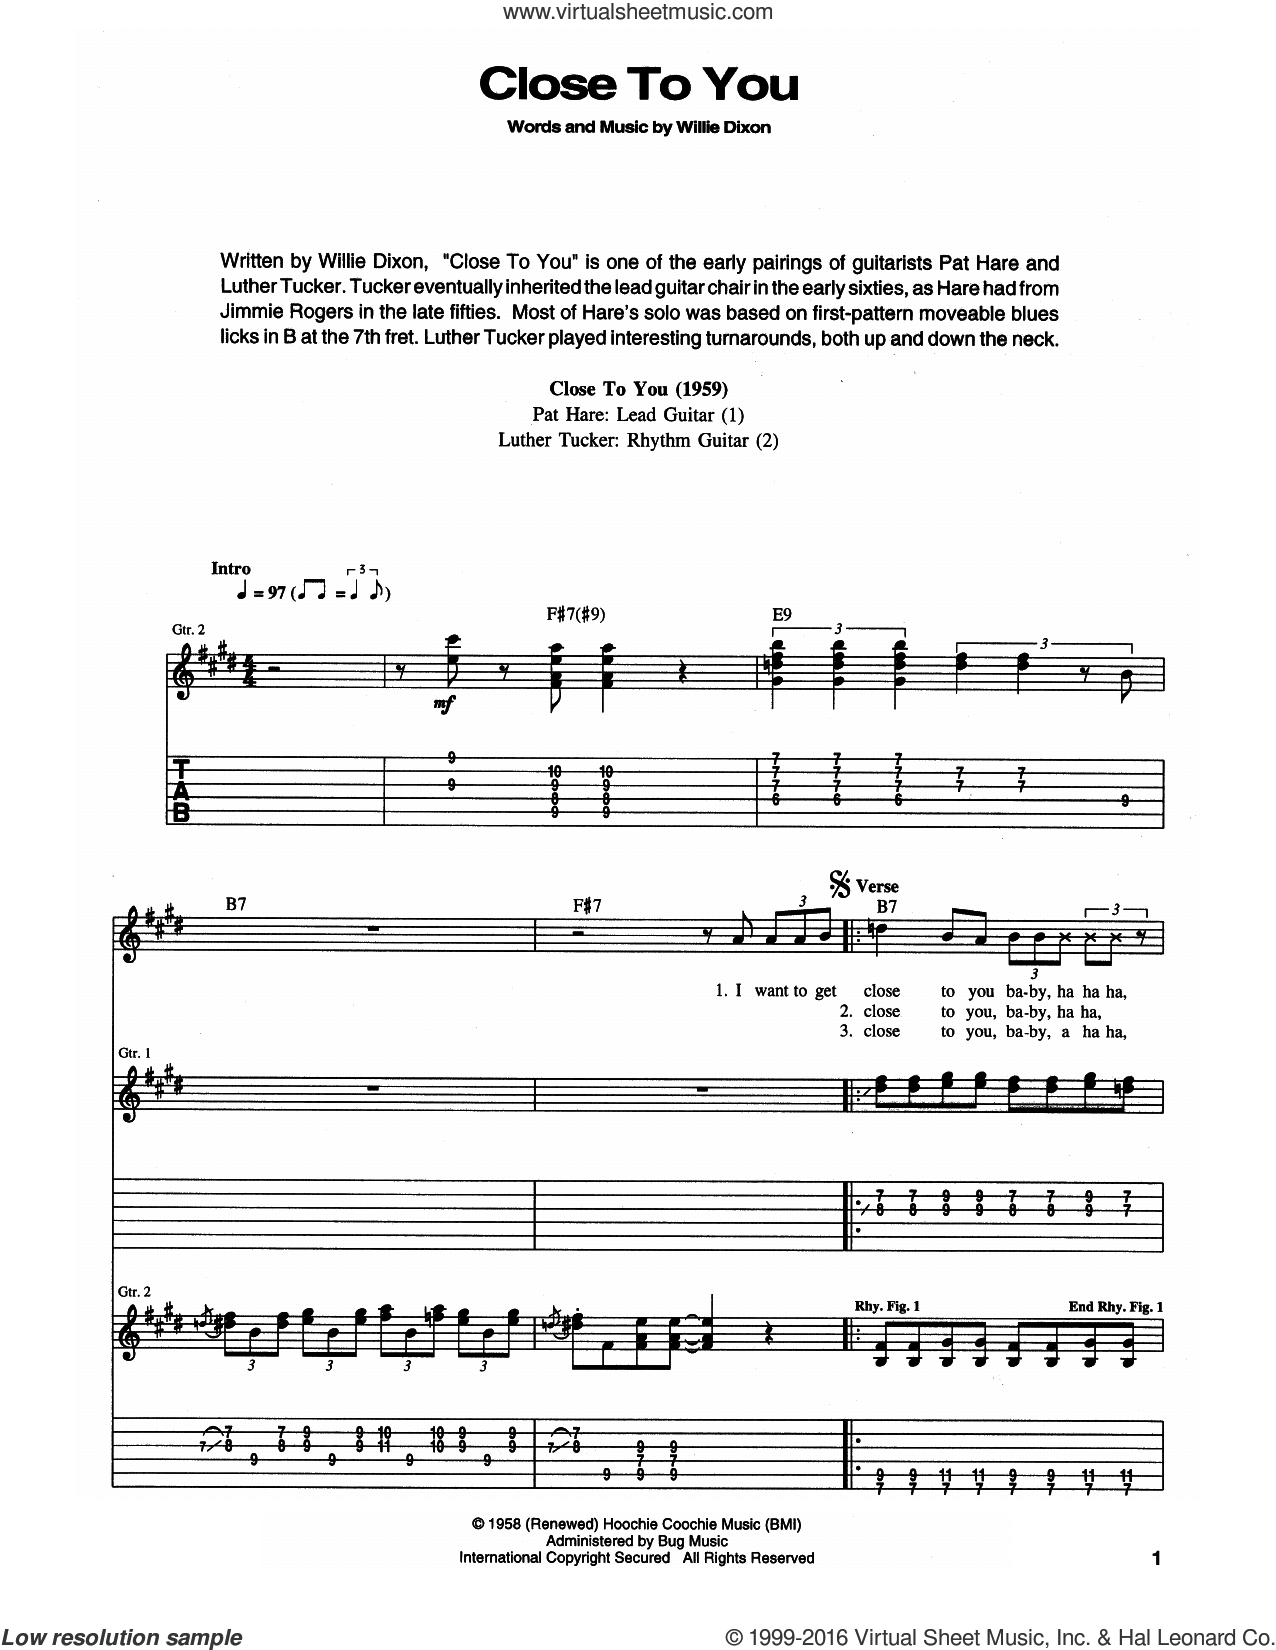 Close To You (I Wanna Get) sheet music for guitar (tablature) by Muddy Waters, Luther Tucker, Pat Hare and Willie Dixon, intermediate skill level